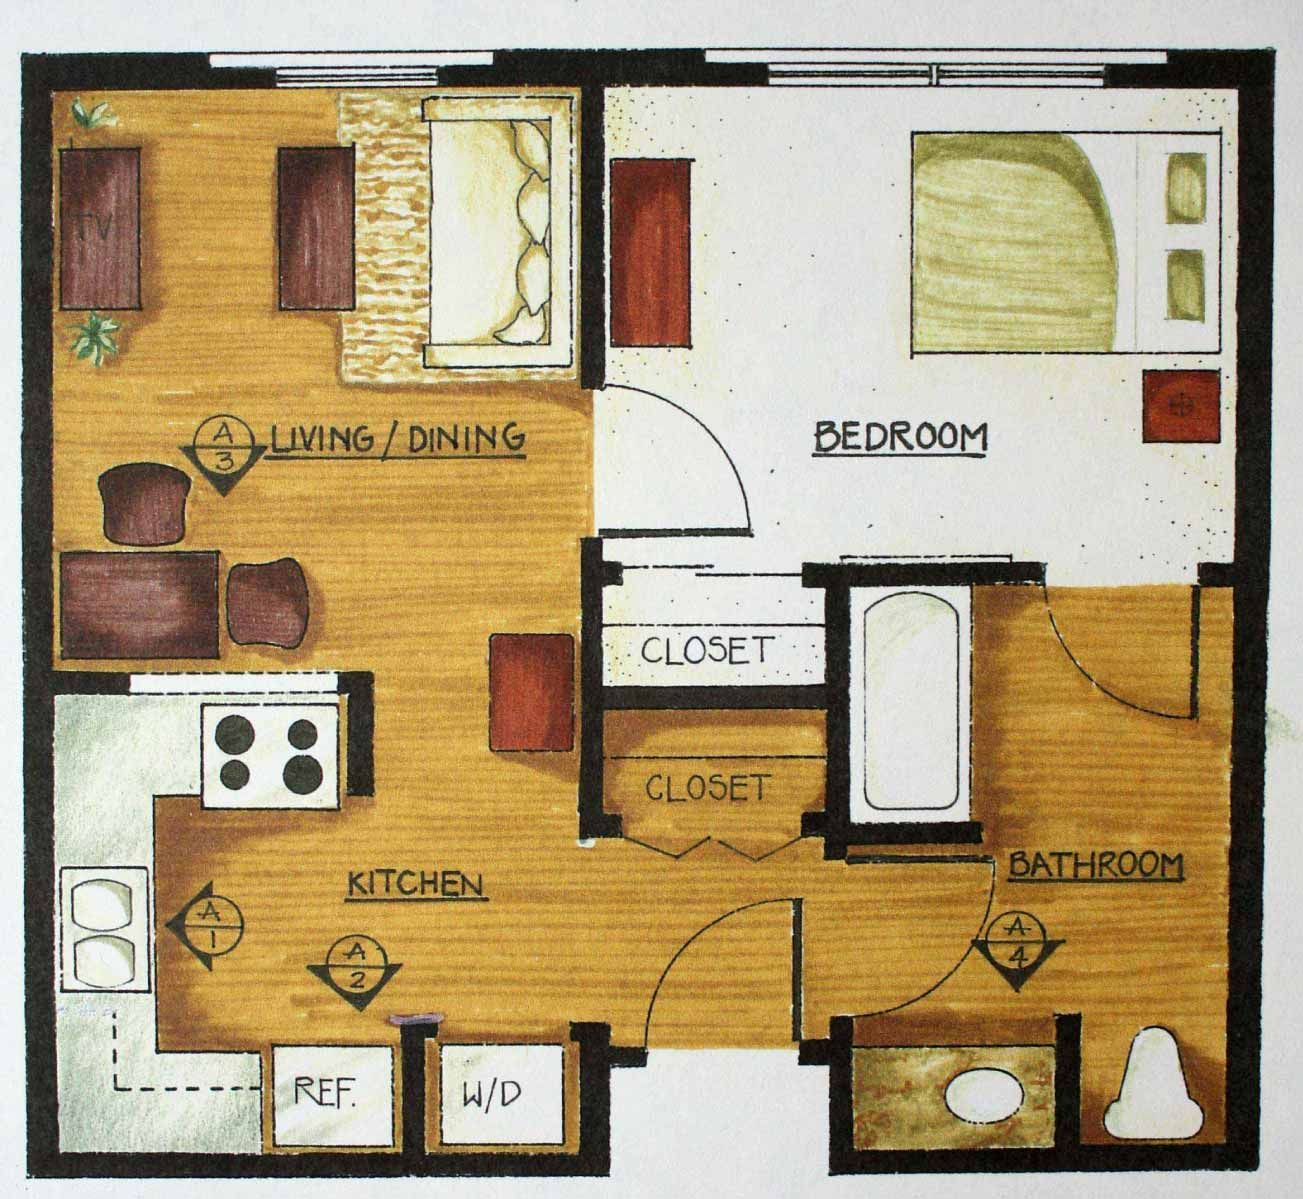 Simple floor plan nice for mother in law has closets washer dryer  like it also rh za pinterest